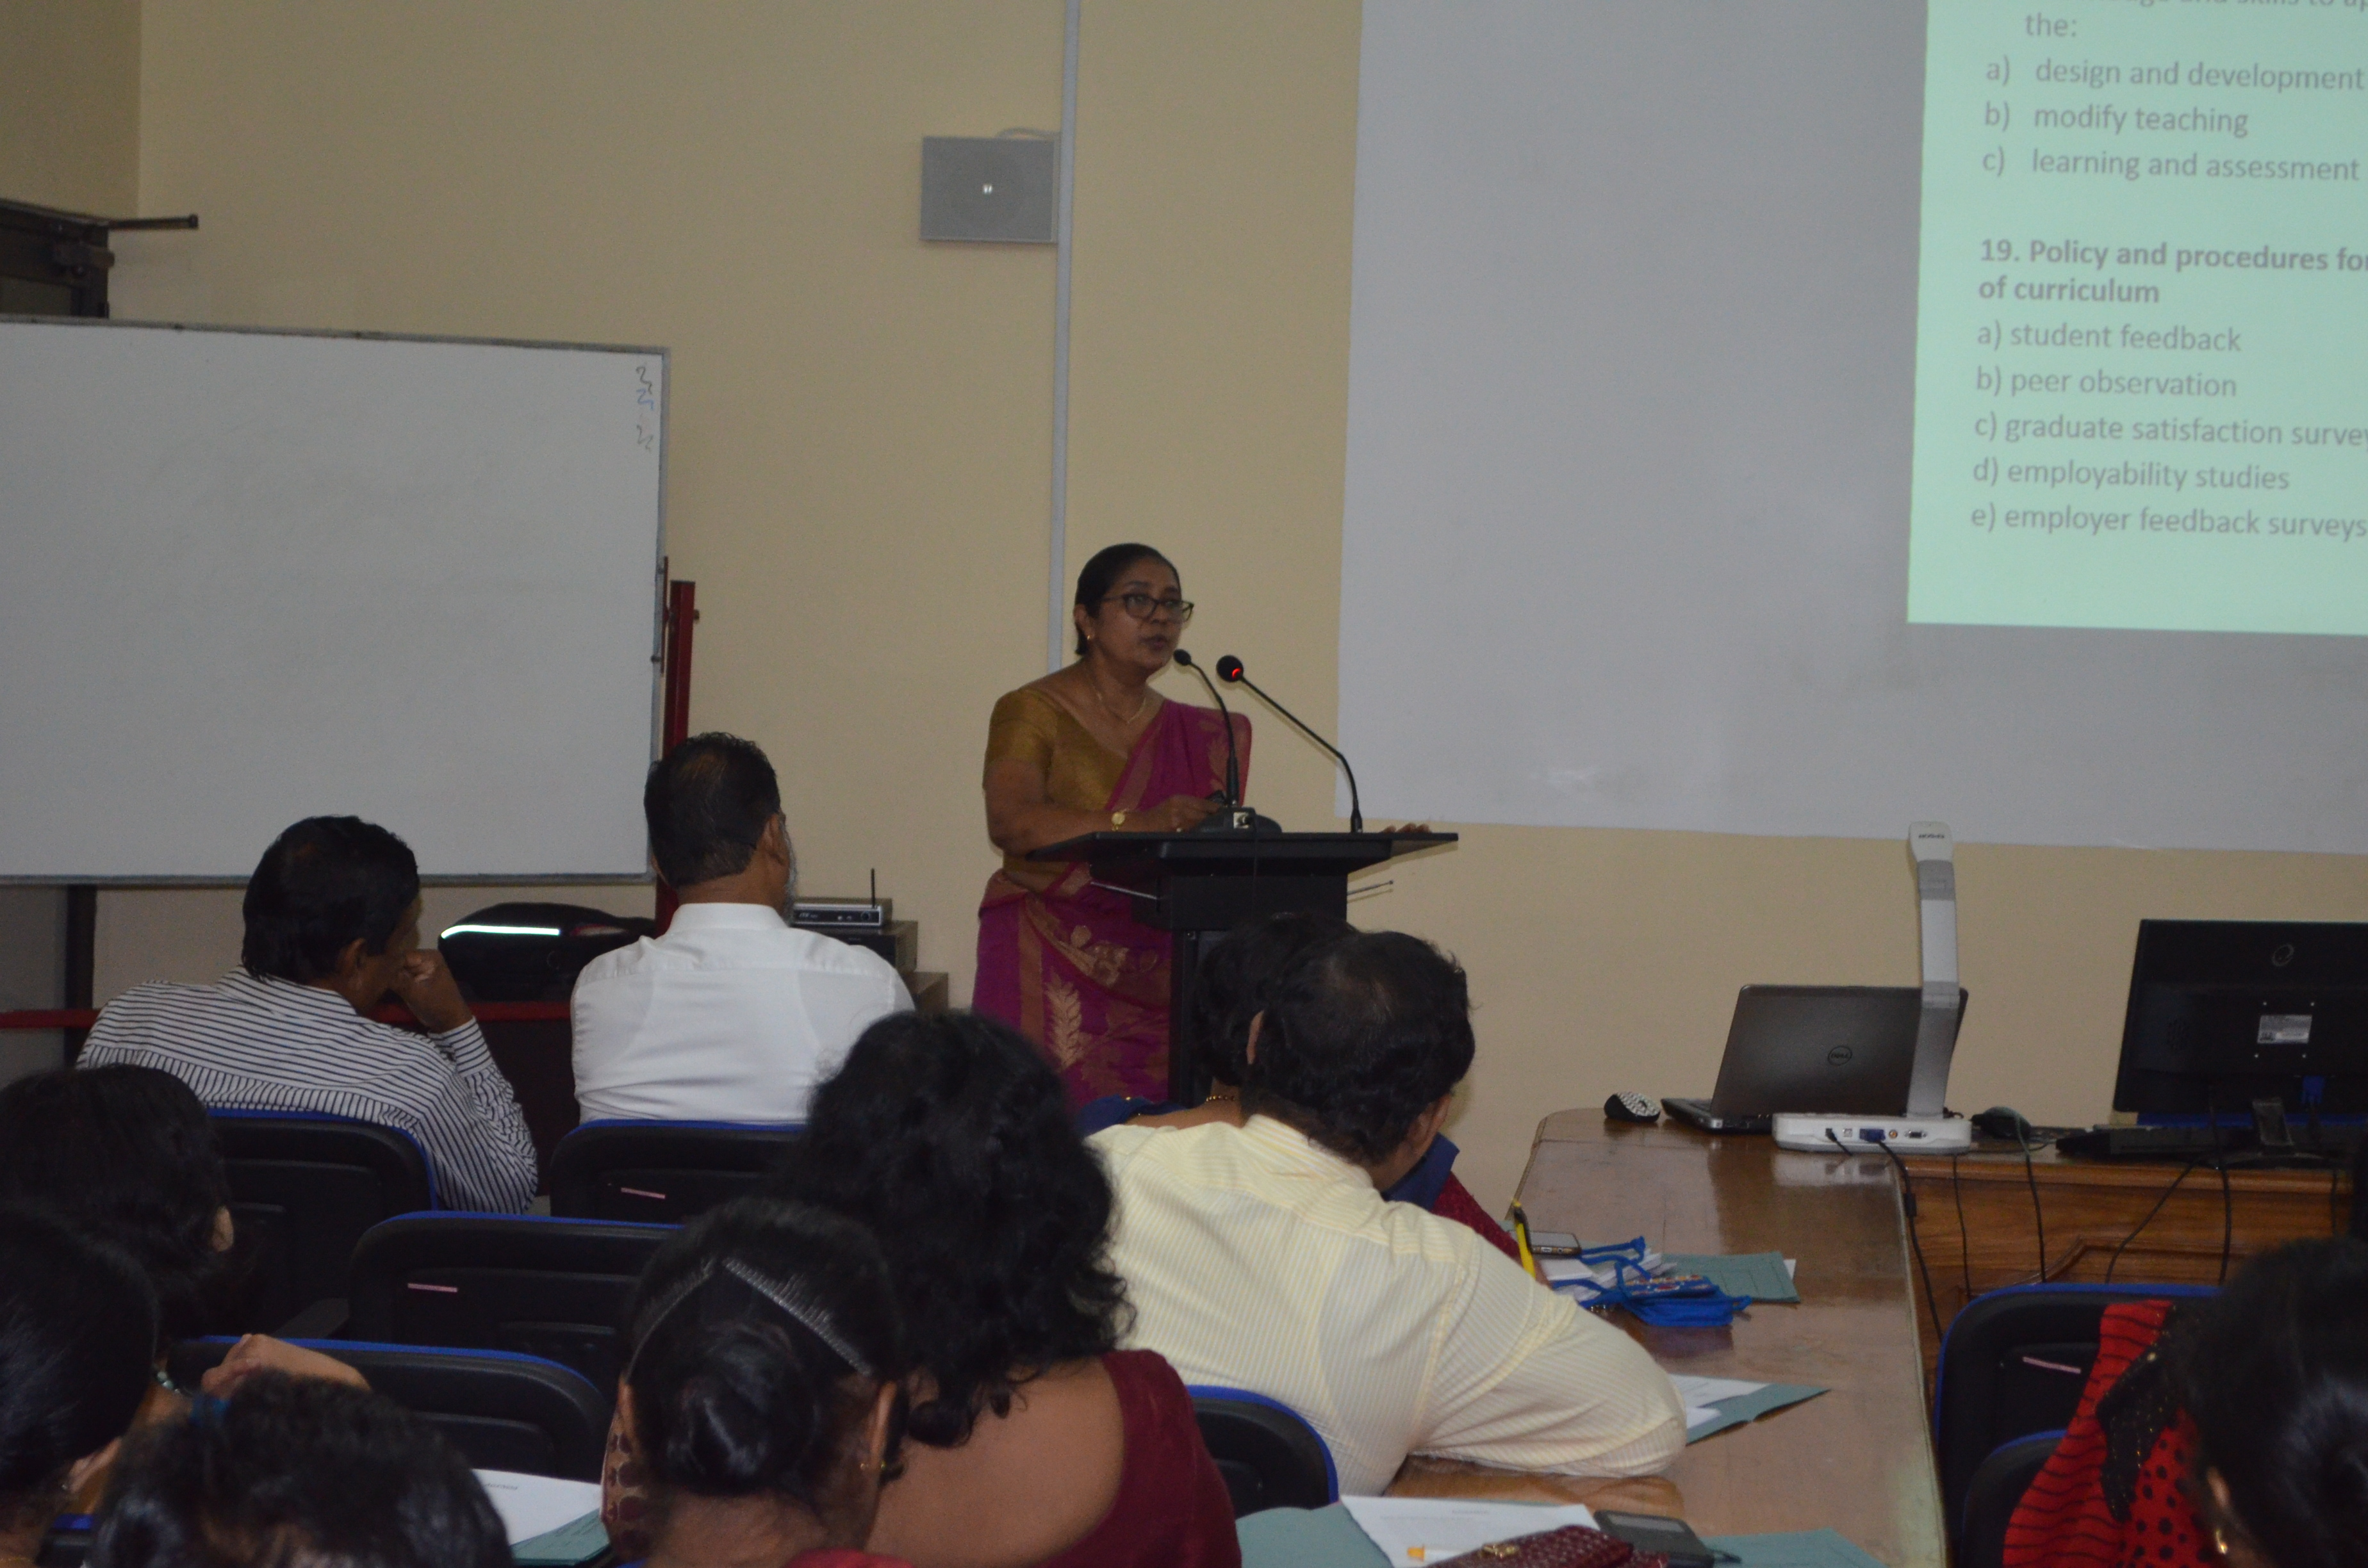 WORKSHOP ON QUALITY ASSURANCE